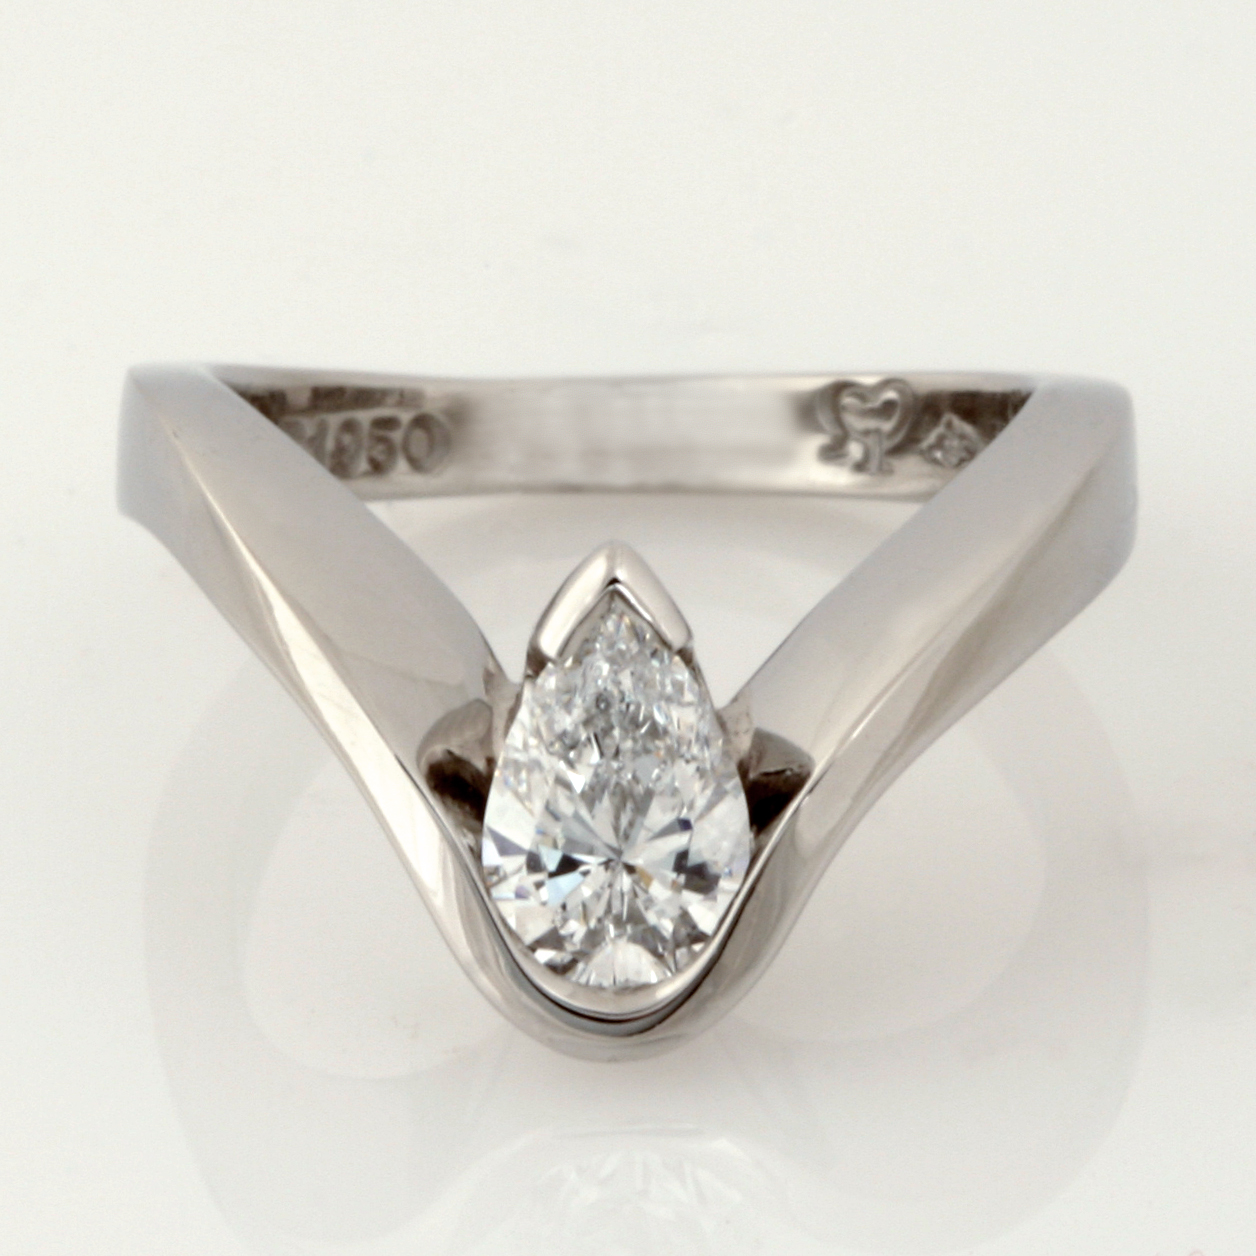 Handmade ladies palladium pear cut diamond engagement ring